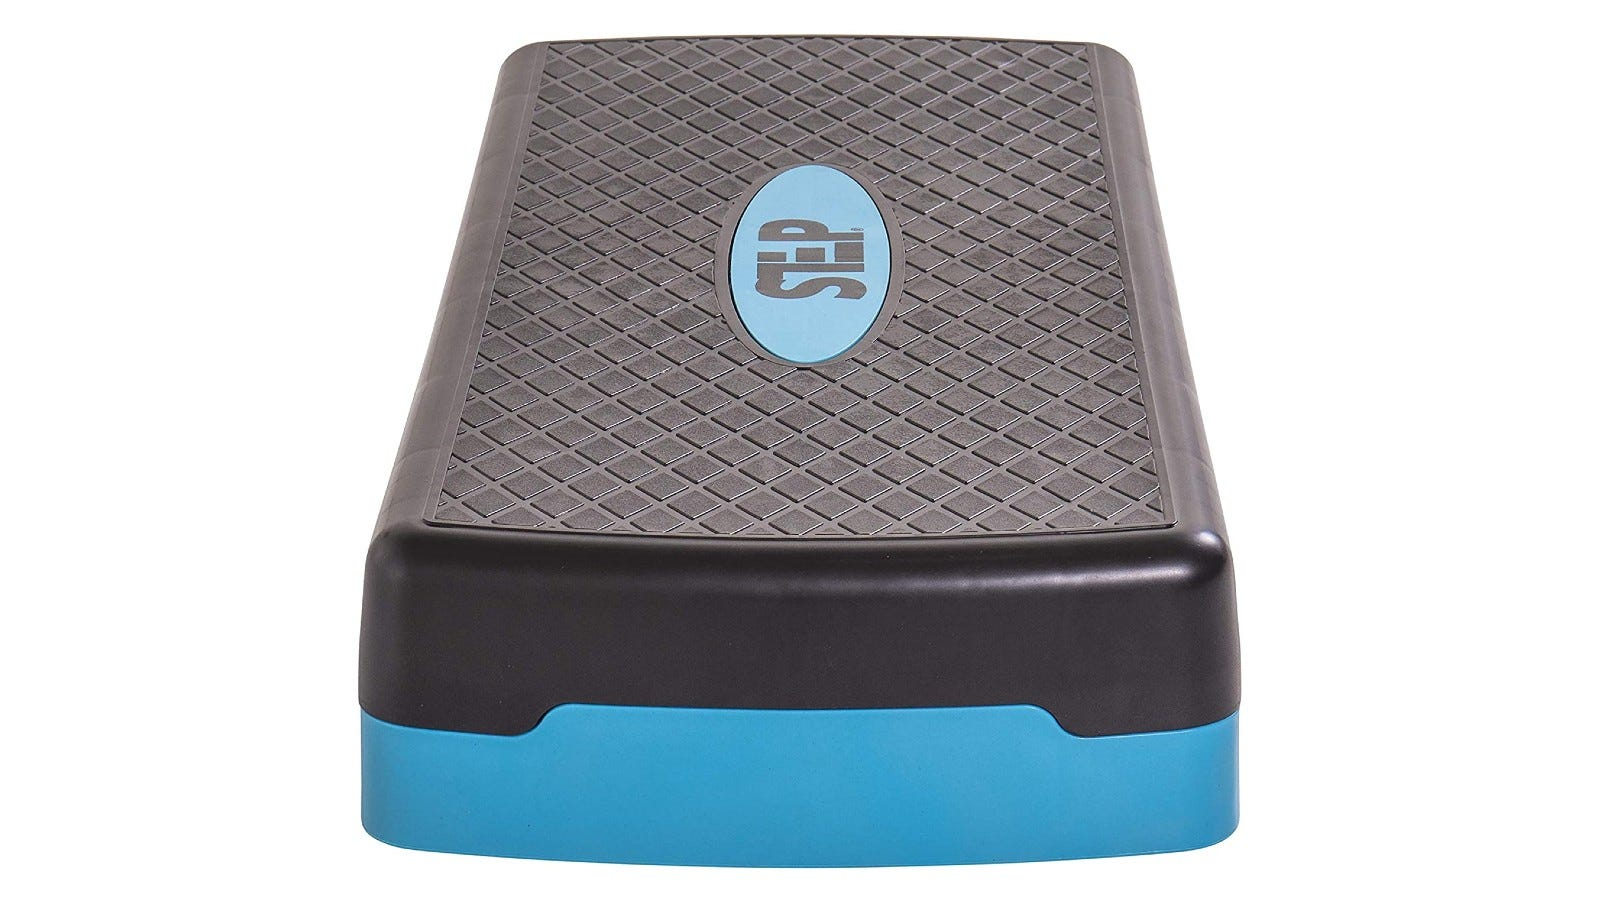 A side view of a black and blue step platform.